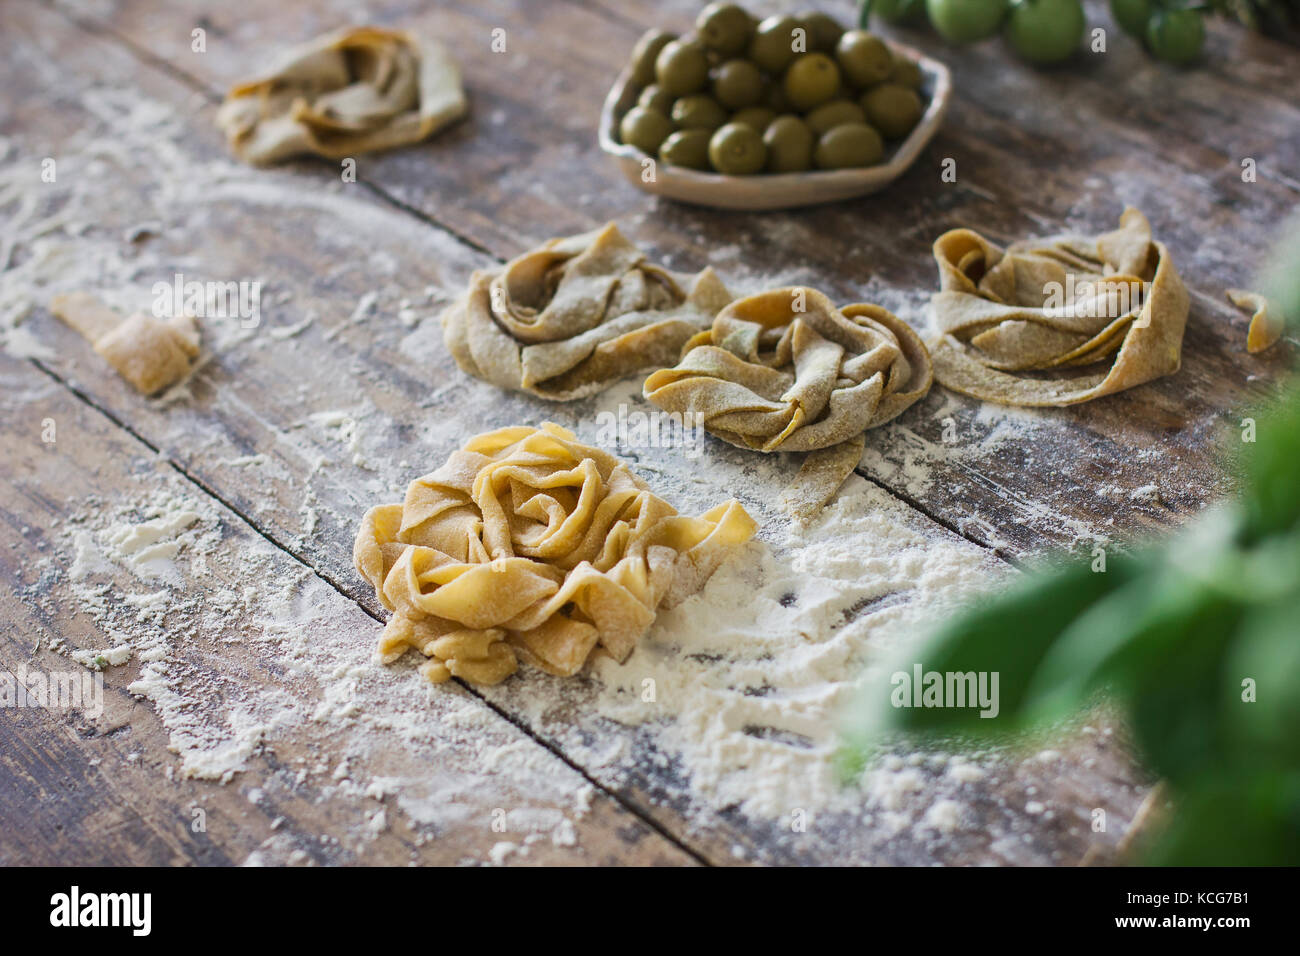 Raw homemade pasta on the old wooden table - Stock Image